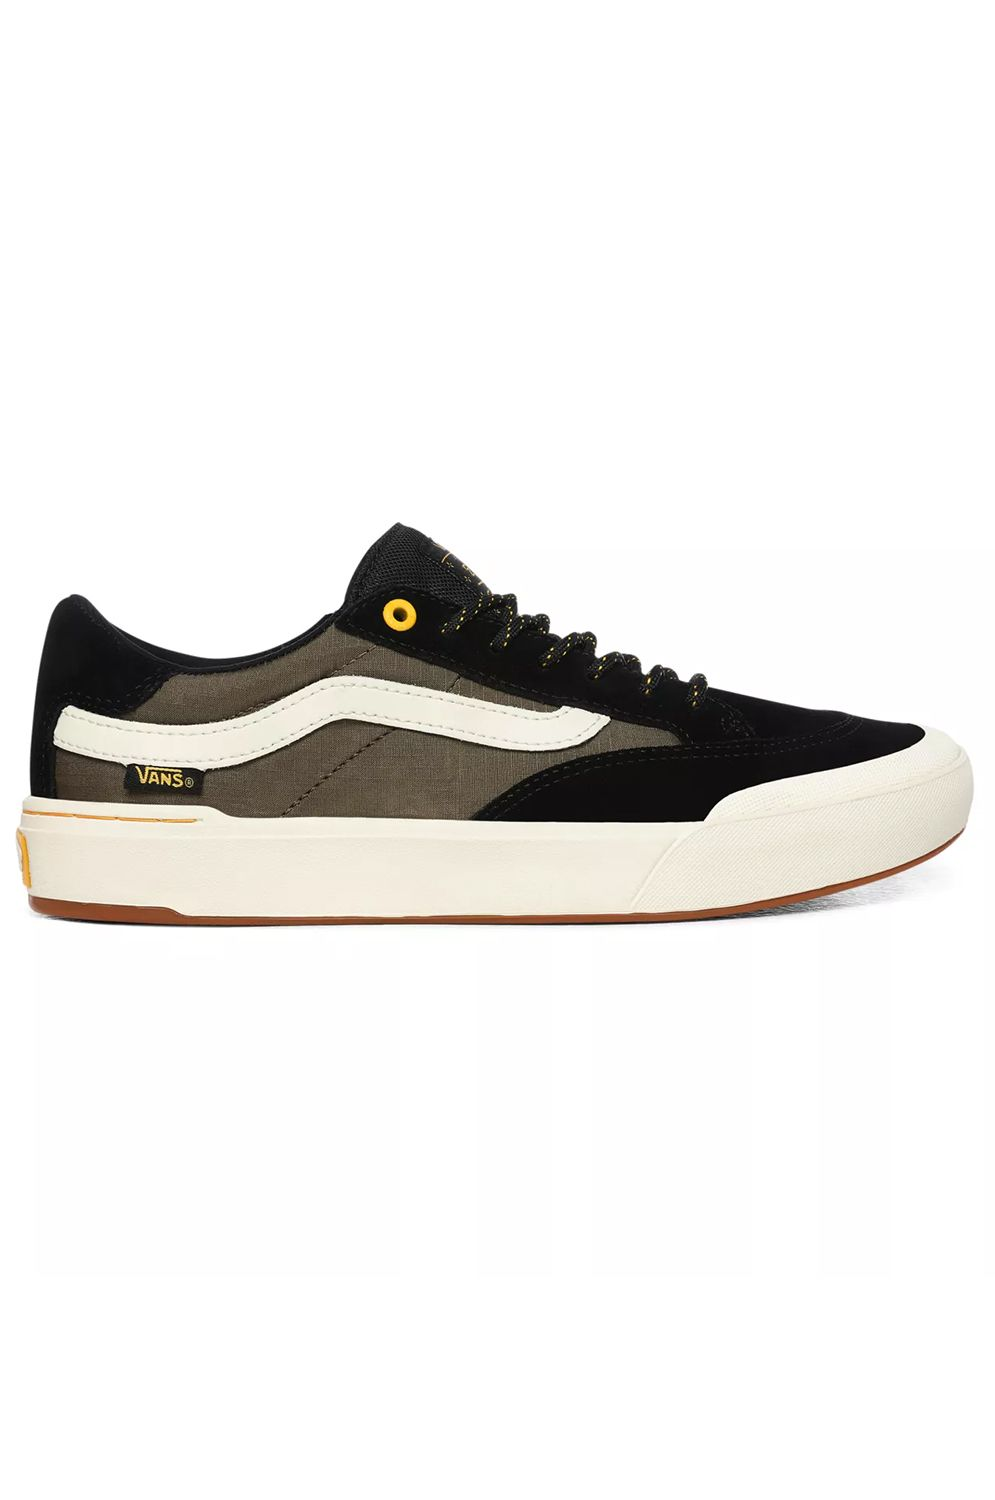 Tenis Vans MN BERLE PRO (Surplus) Black/Military